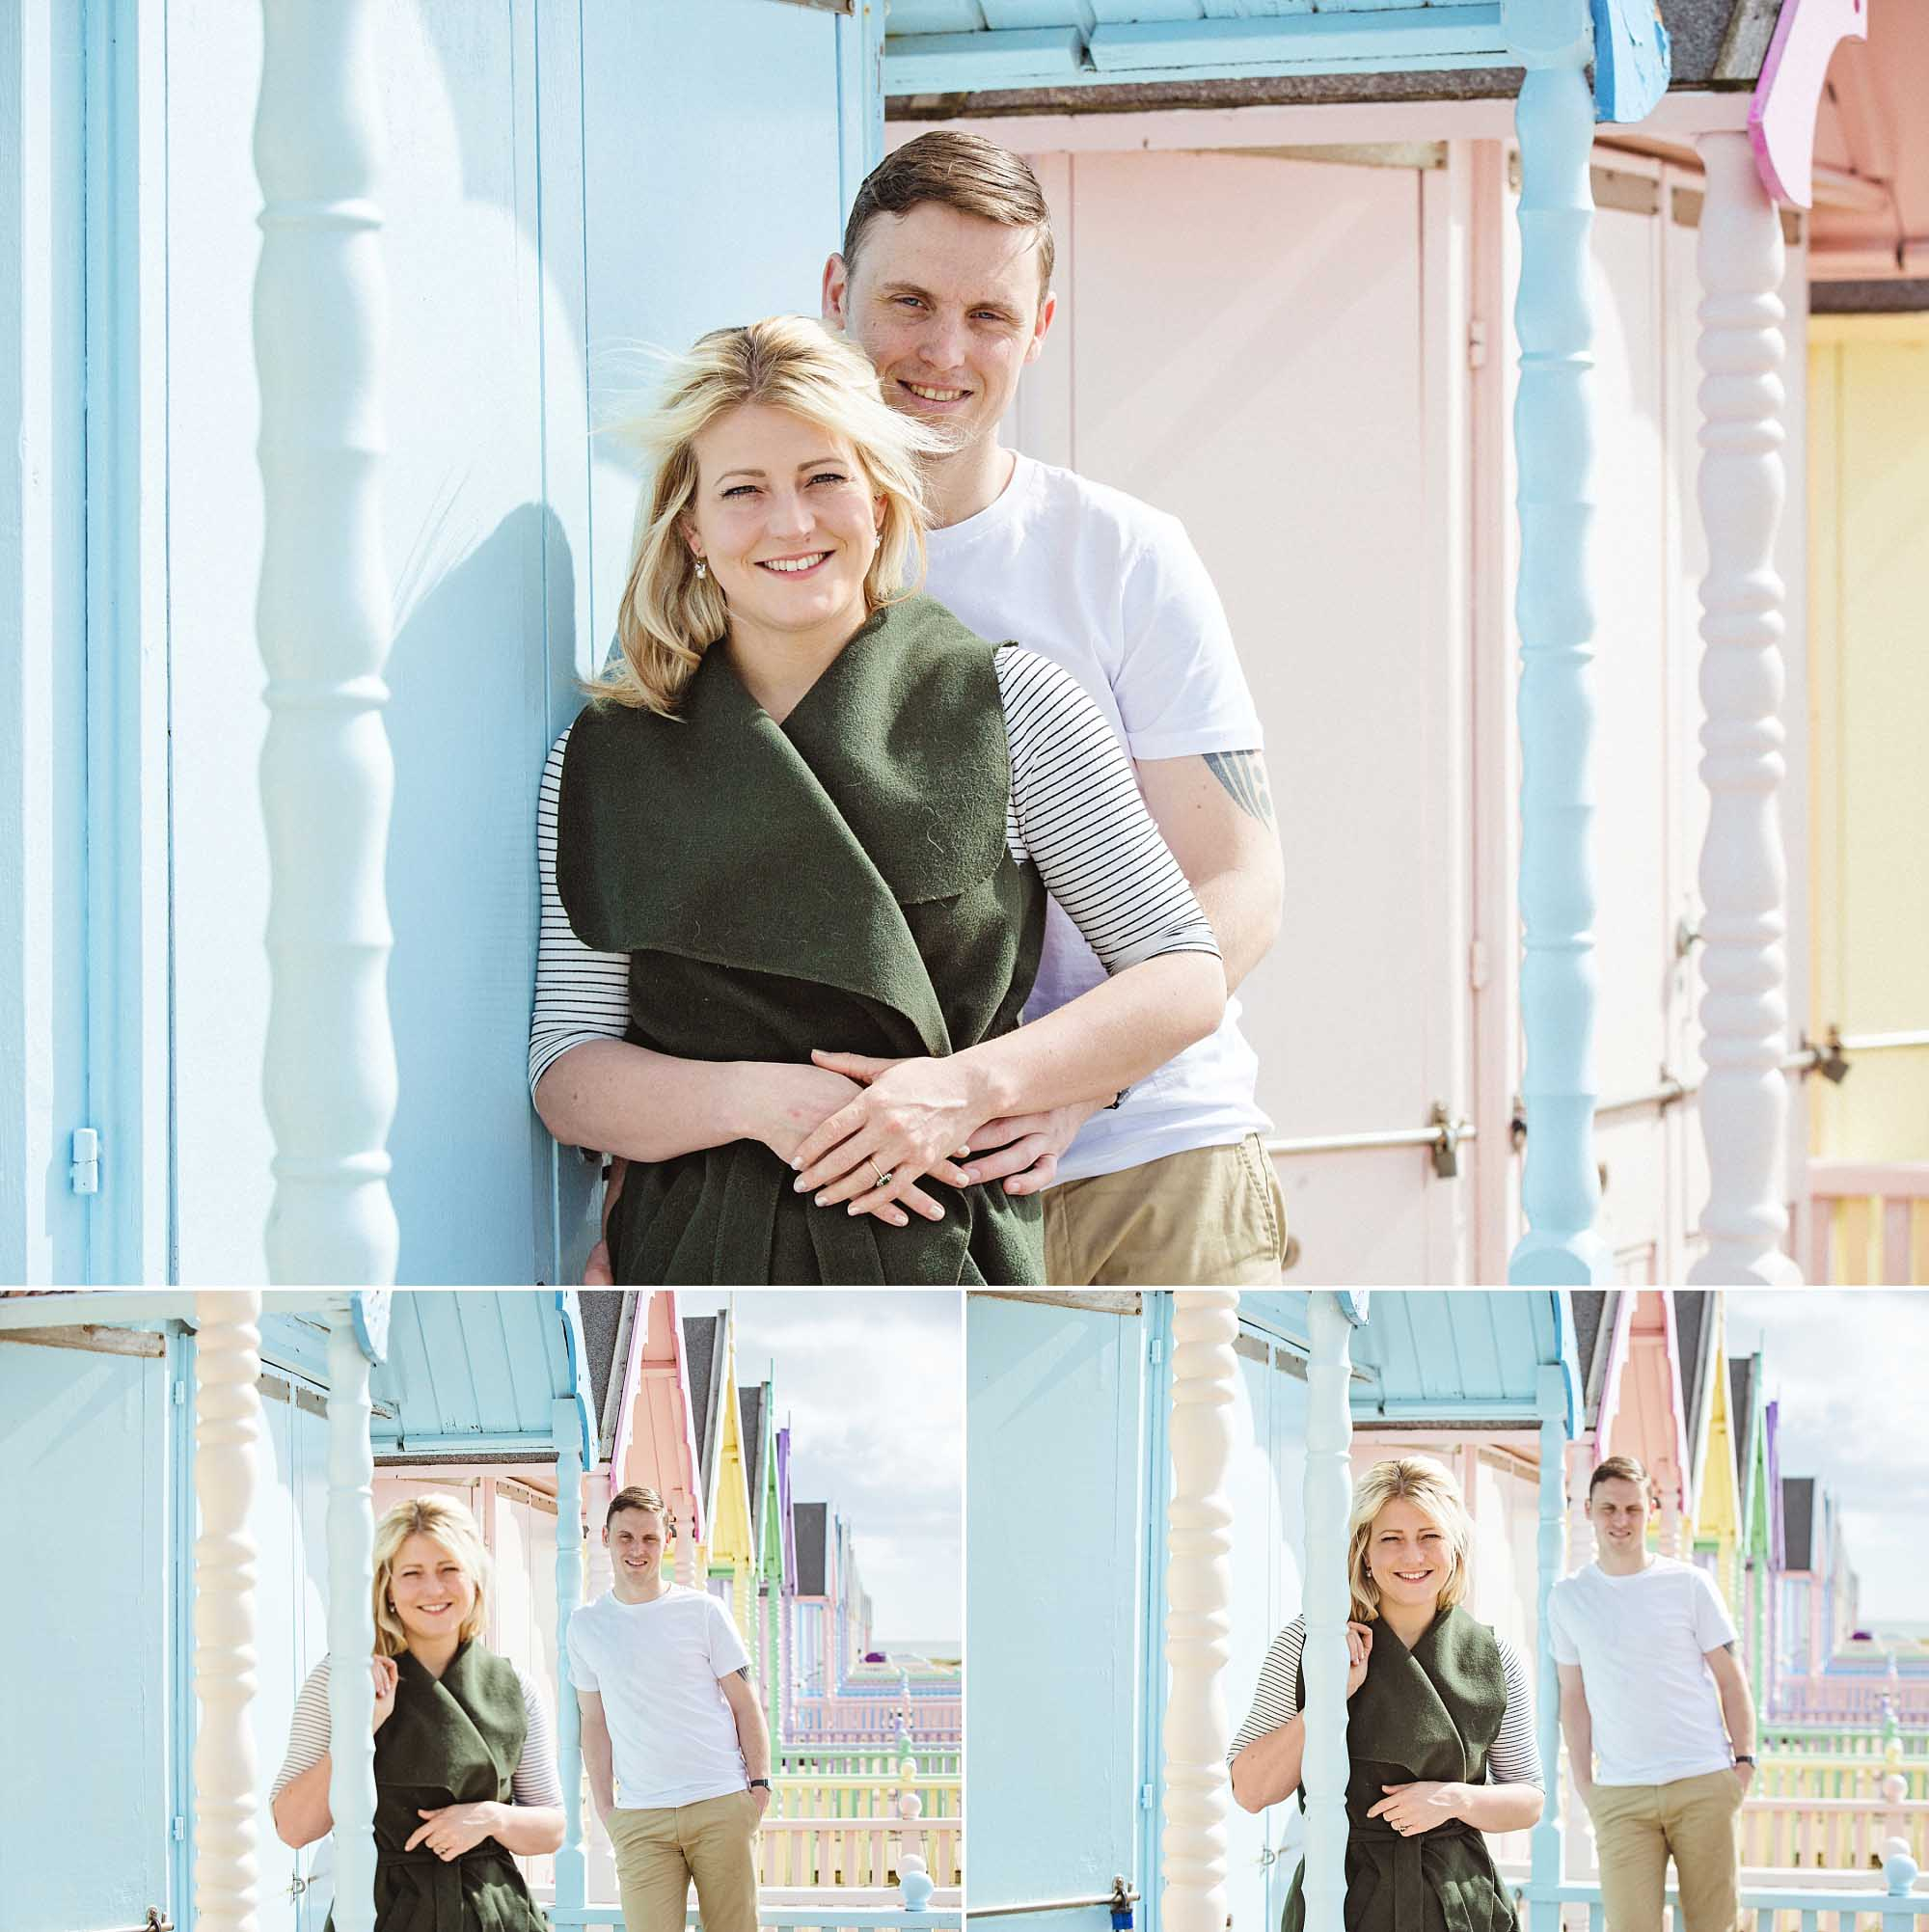 Mersea-Island-Beach-Engagement_0014.jpg